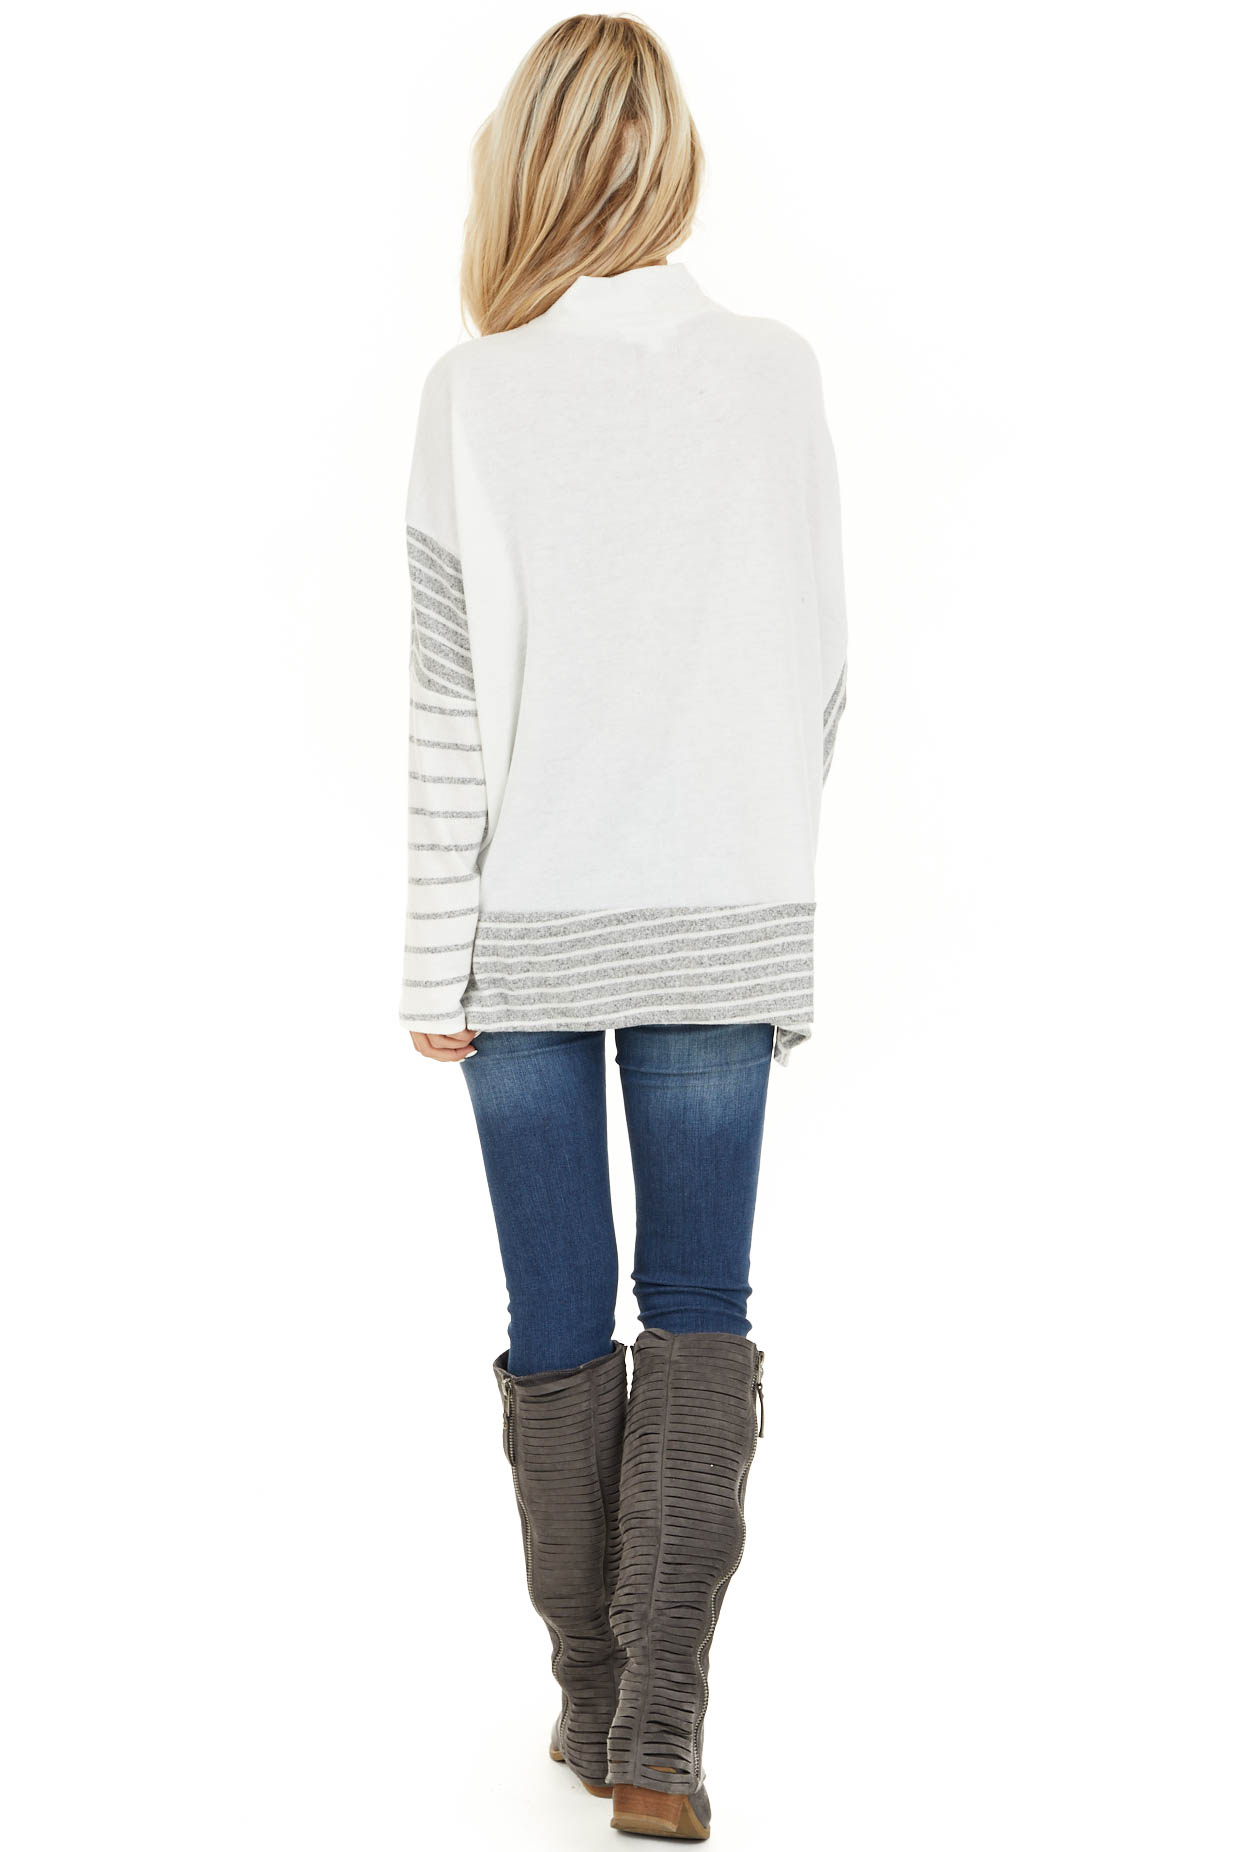 Ivory and Grey Striped Mock Neck Top with Dolman Sleeves back full body